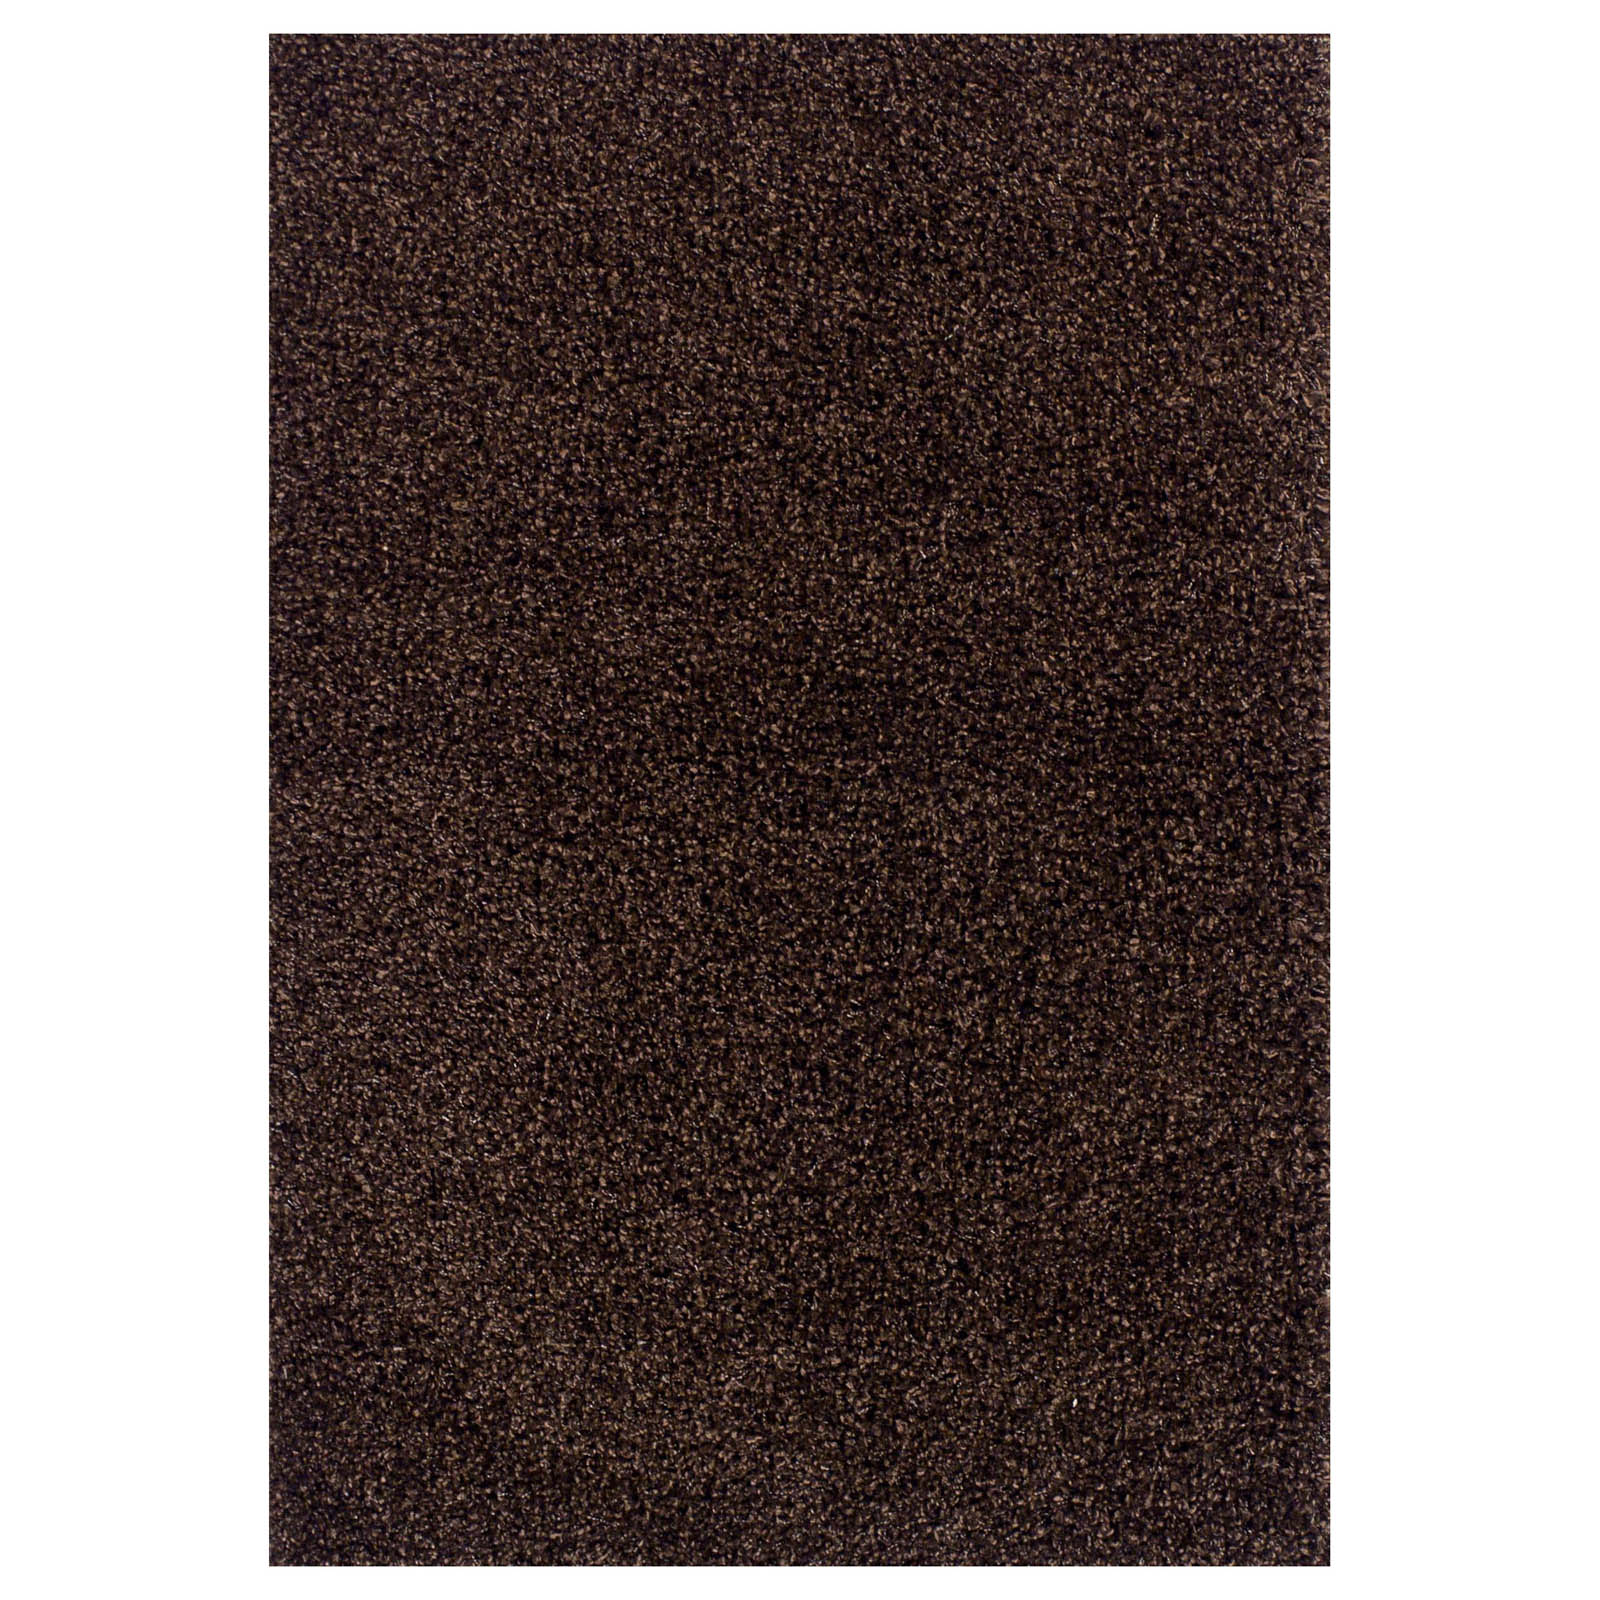 Elsa Shaggy Rugs in Chocolate Brown